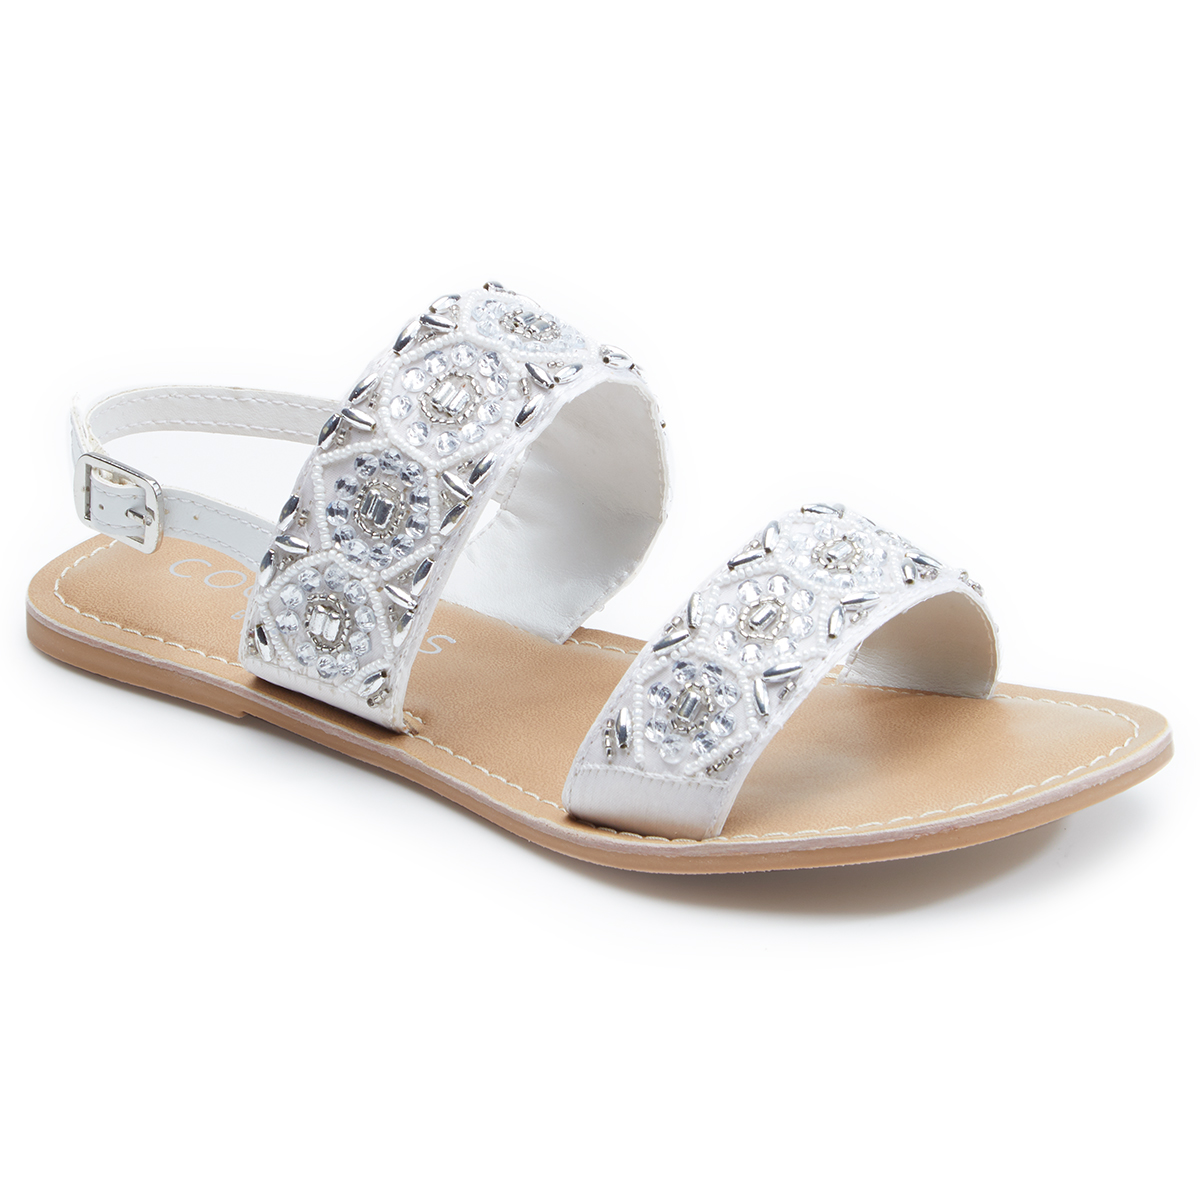 Matisse Footwear Women's Coconuts Chica Sandals - White, 7